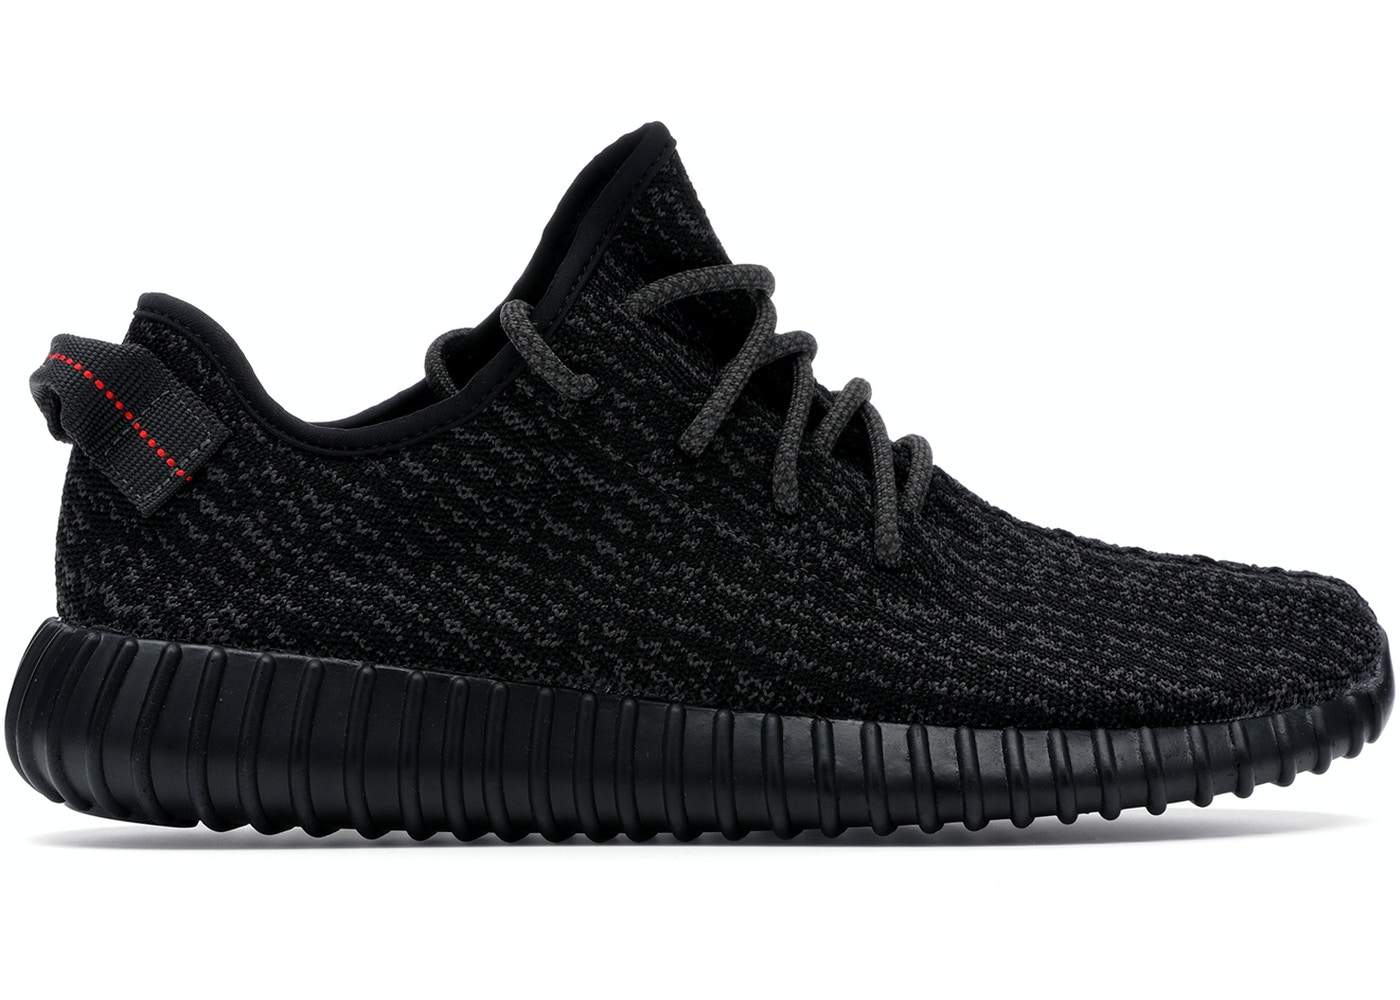 purchase cheap f4e1c 82816 adidas Yeezy Boost 350 Pirate Black (2016)